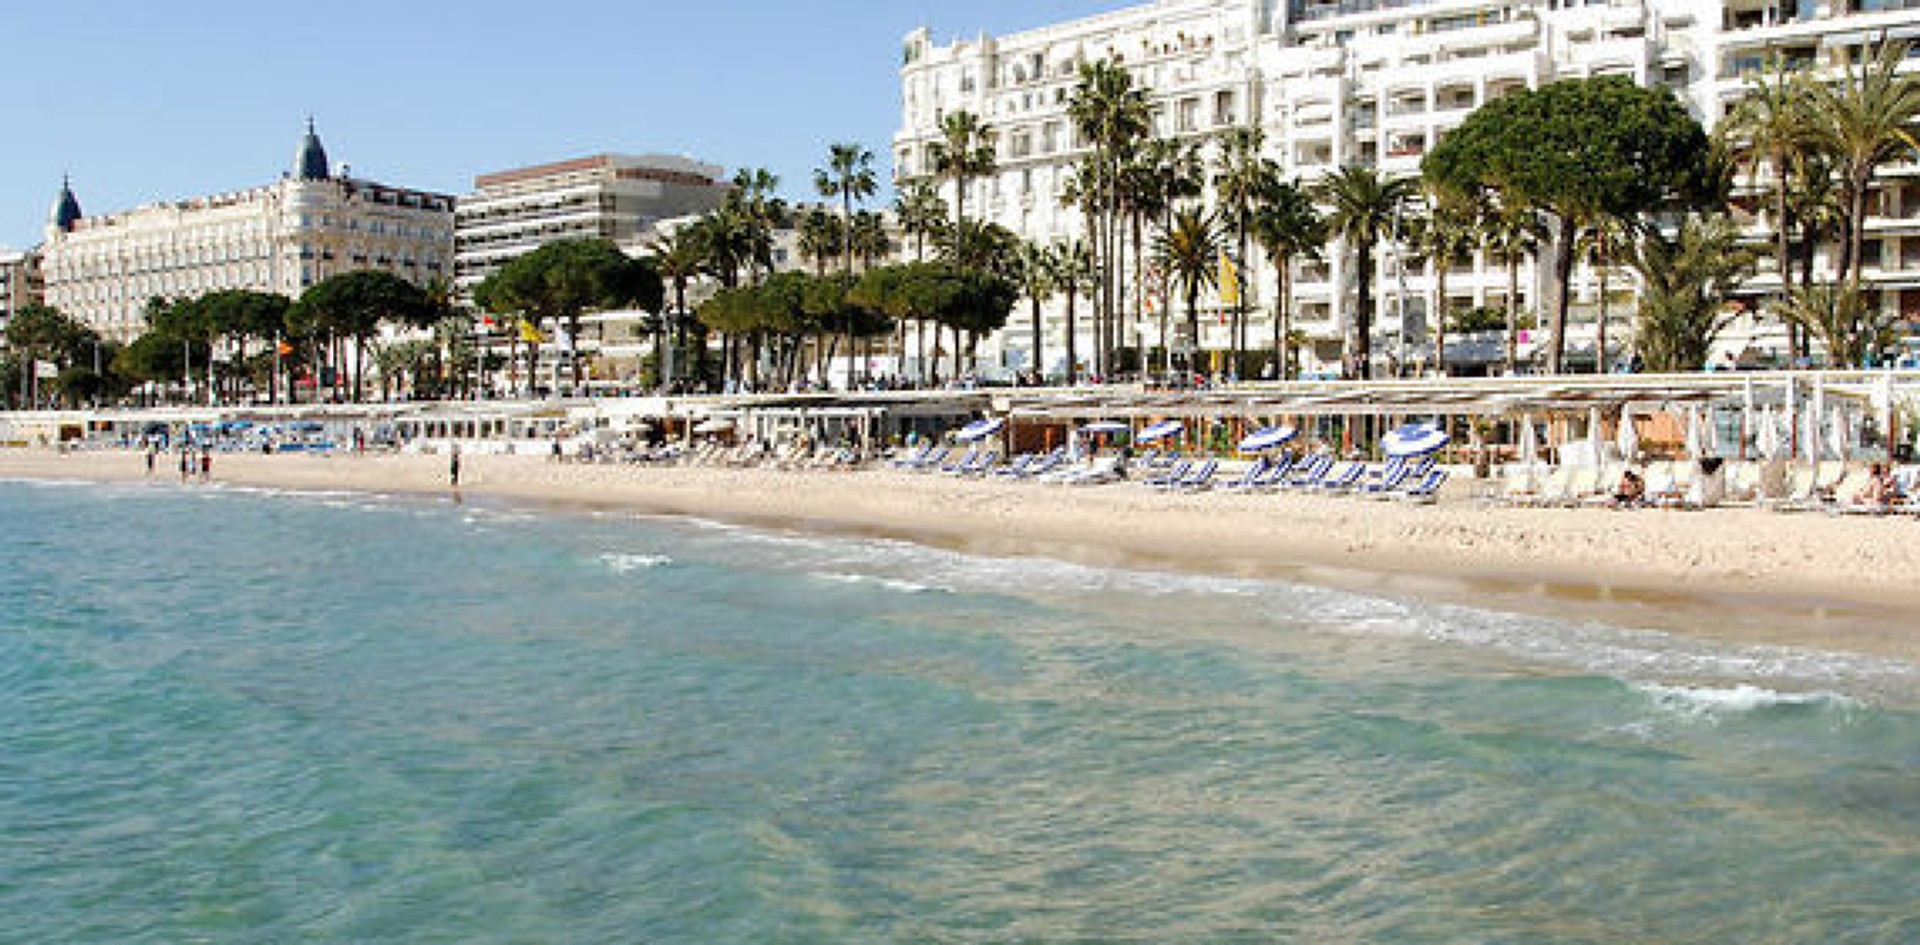 This summer the beaches of Cannes will be even more beautiful…